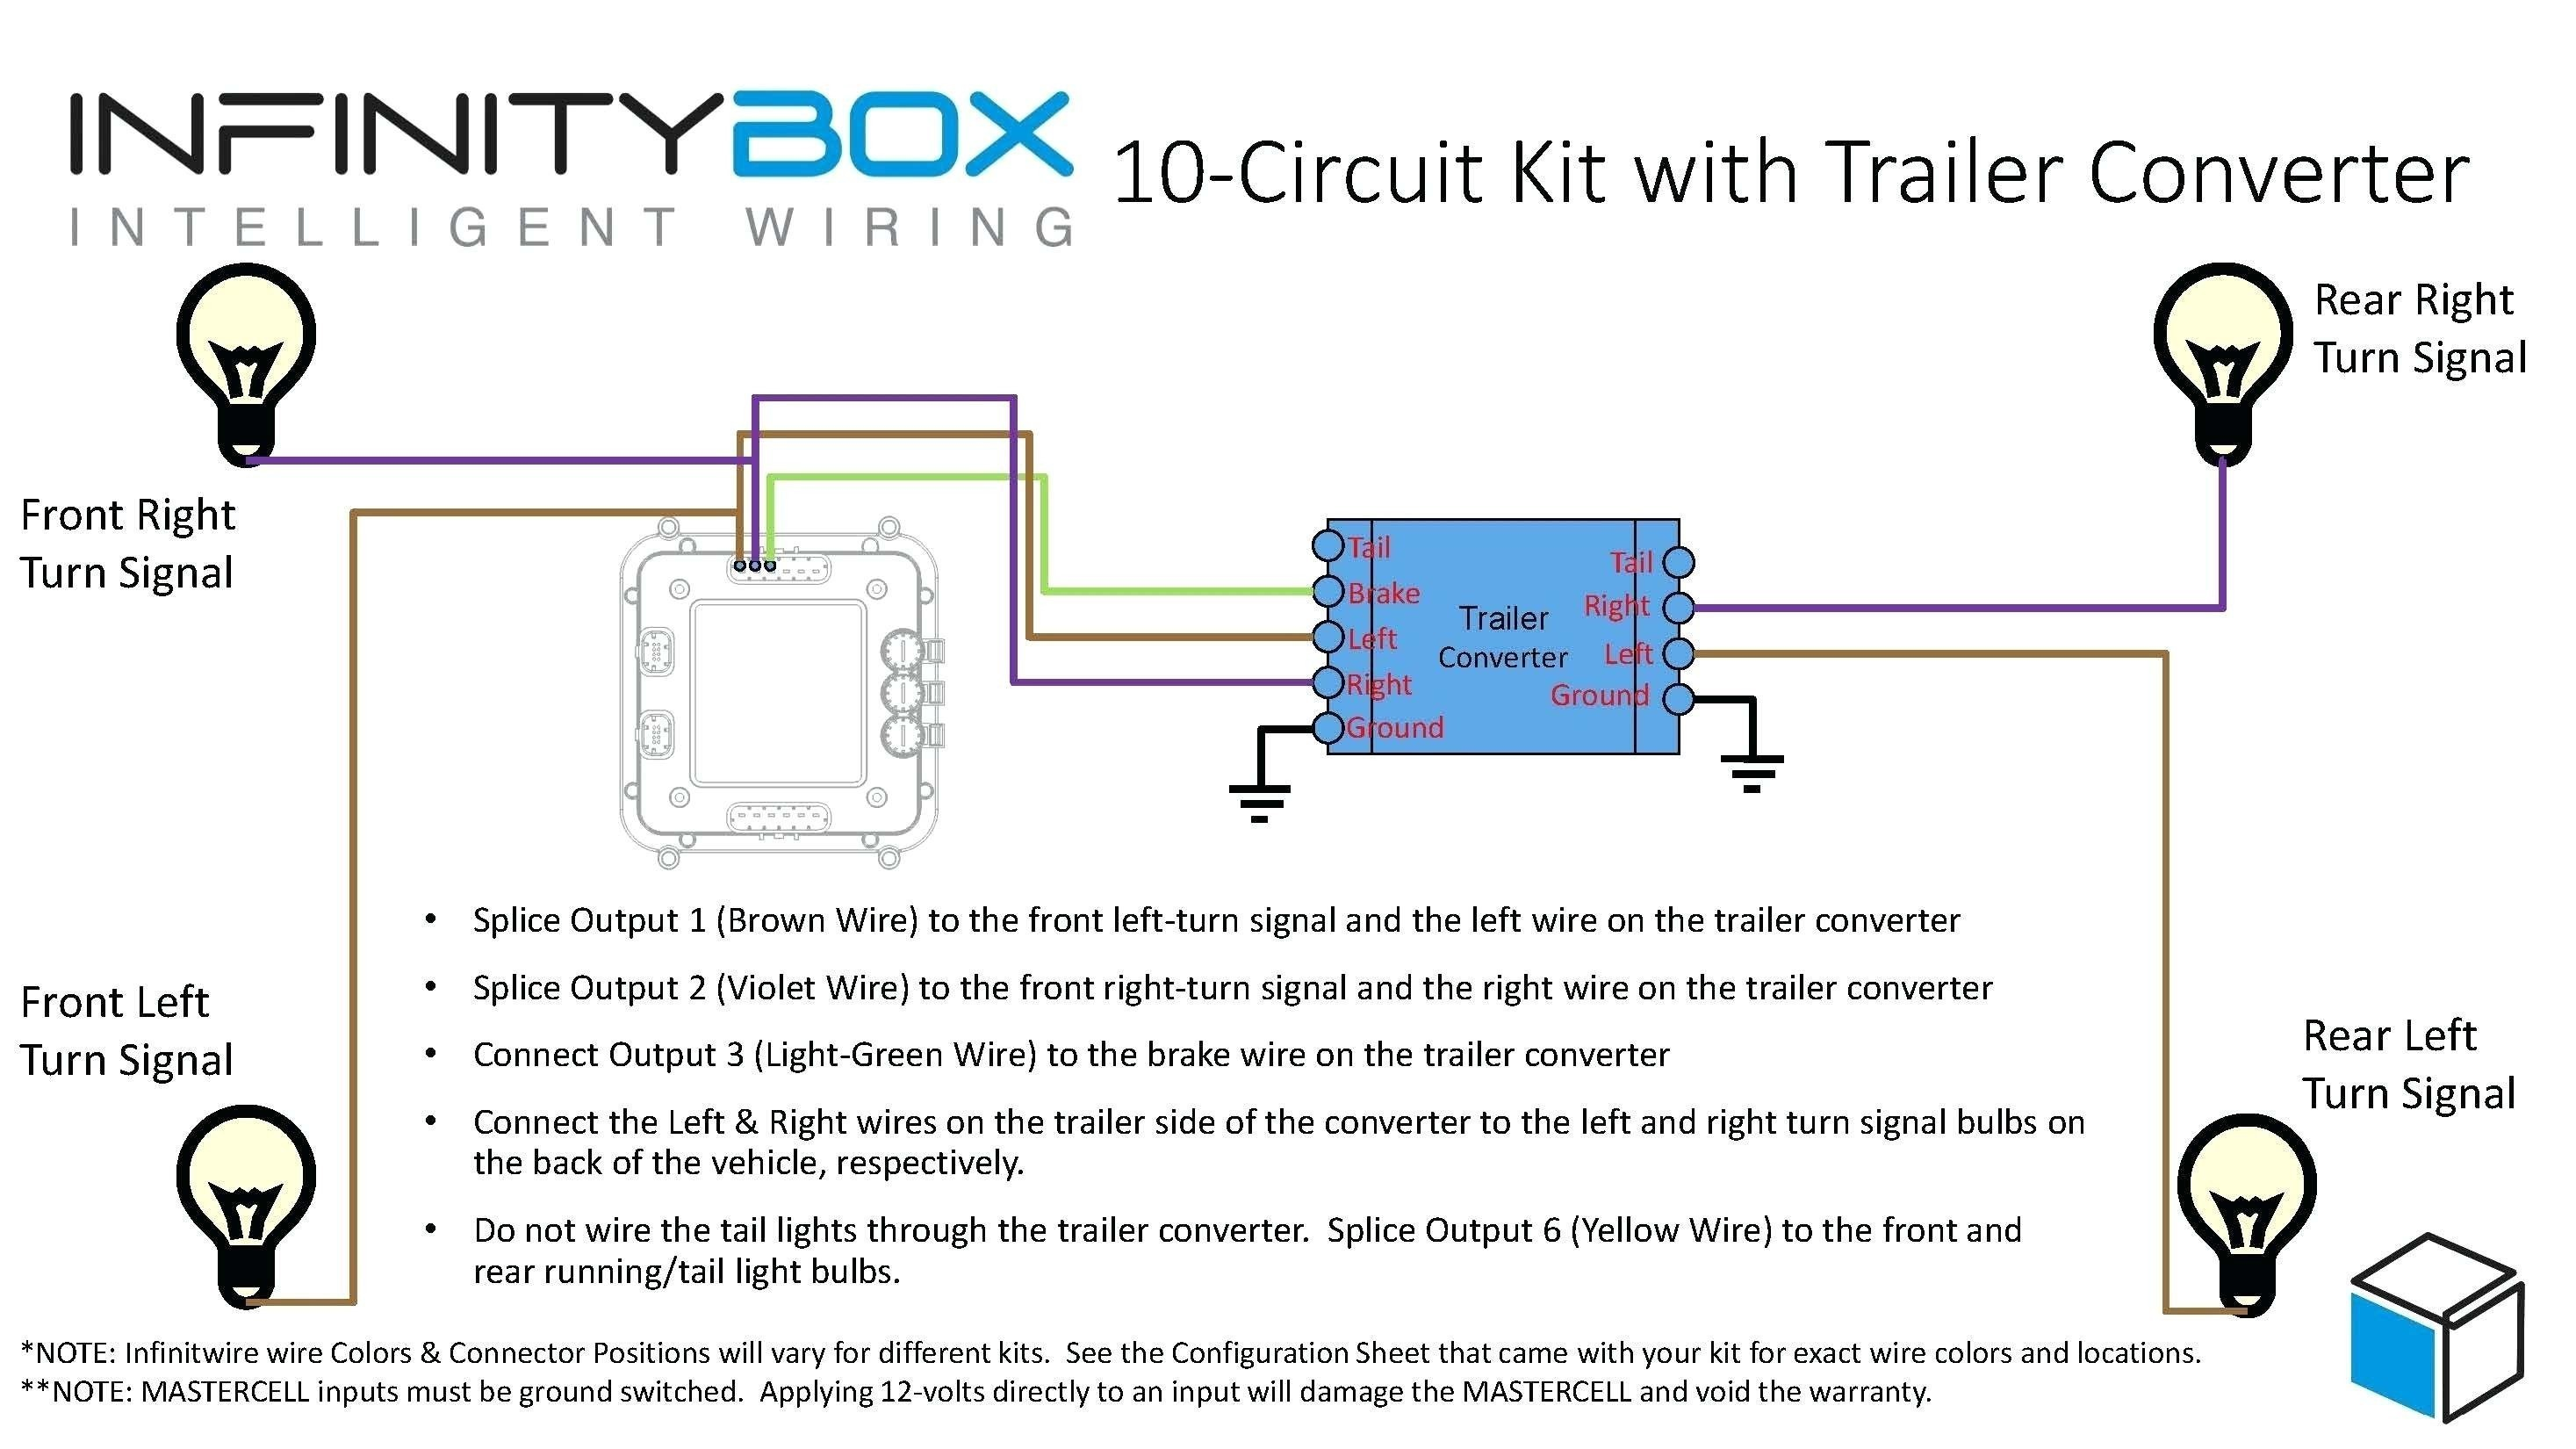 Trailer Wiring Diagram Running Lights Inspirationa Wiring Diagram for Running Lights New Wiring Diagrams for Utility